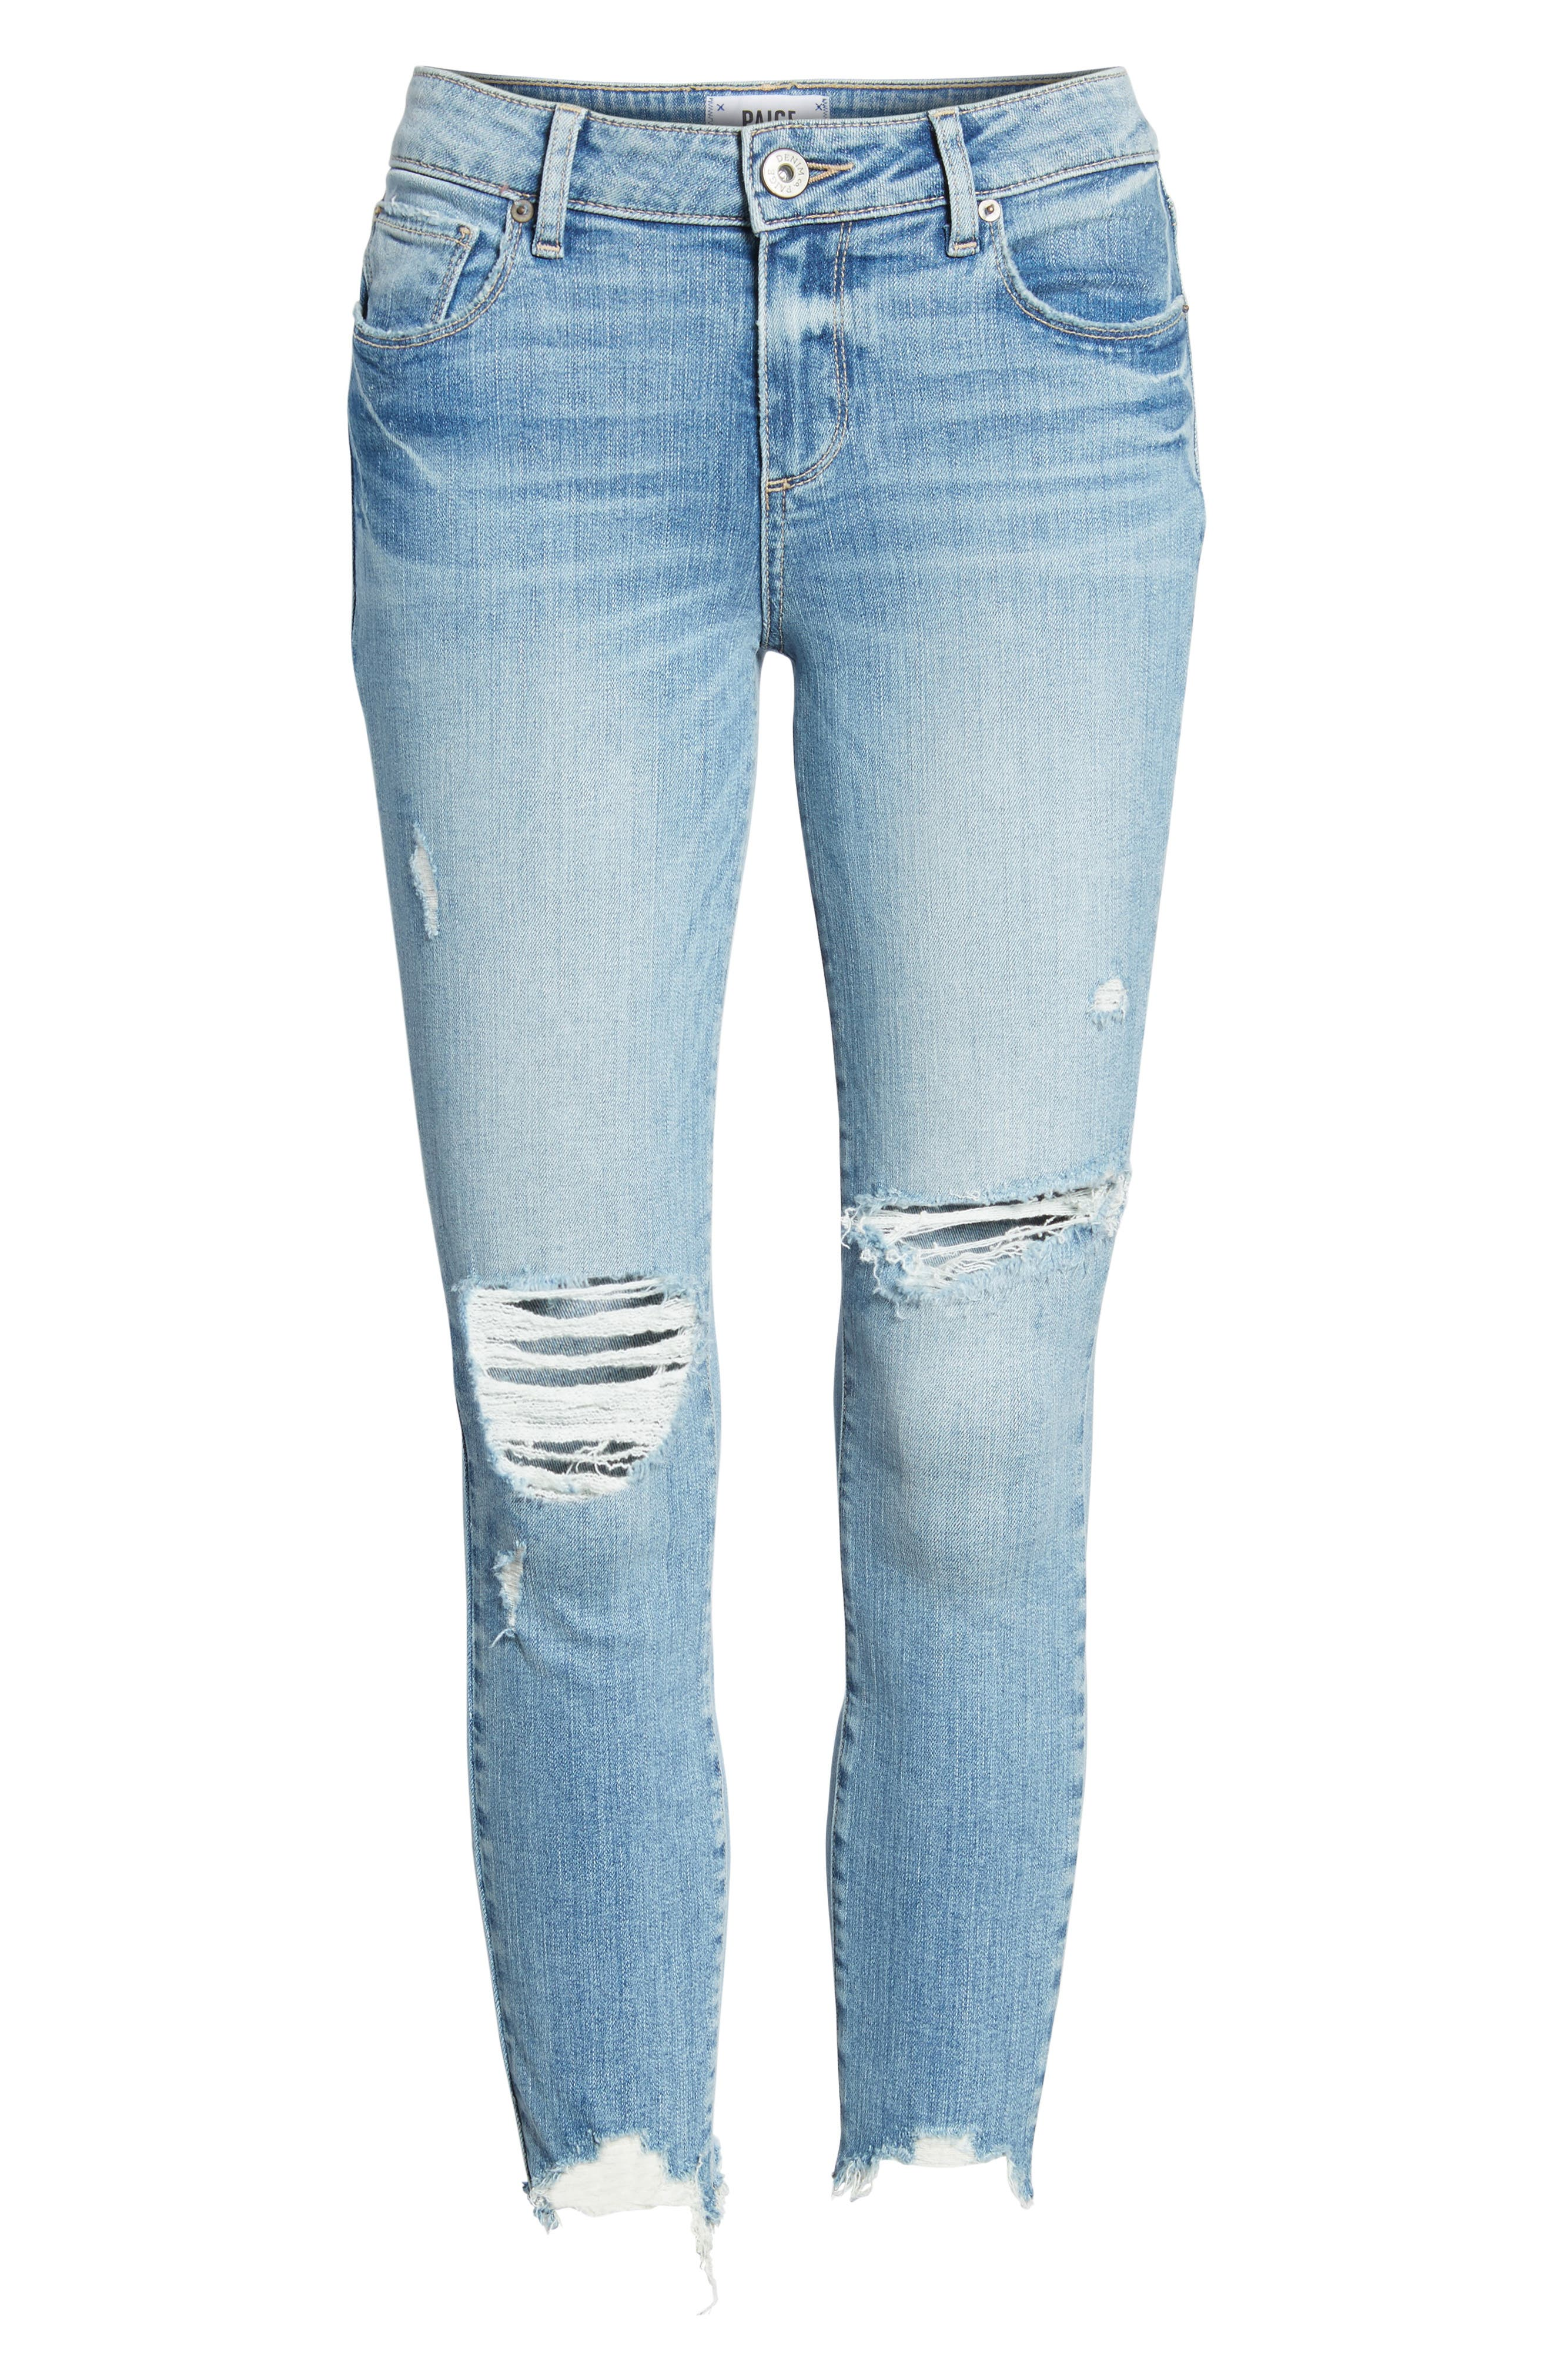 Verdugo Ripped Crop Ultra Skinny Jeans,                             Alternate thumbnail 7, color,                             Janis Destructed